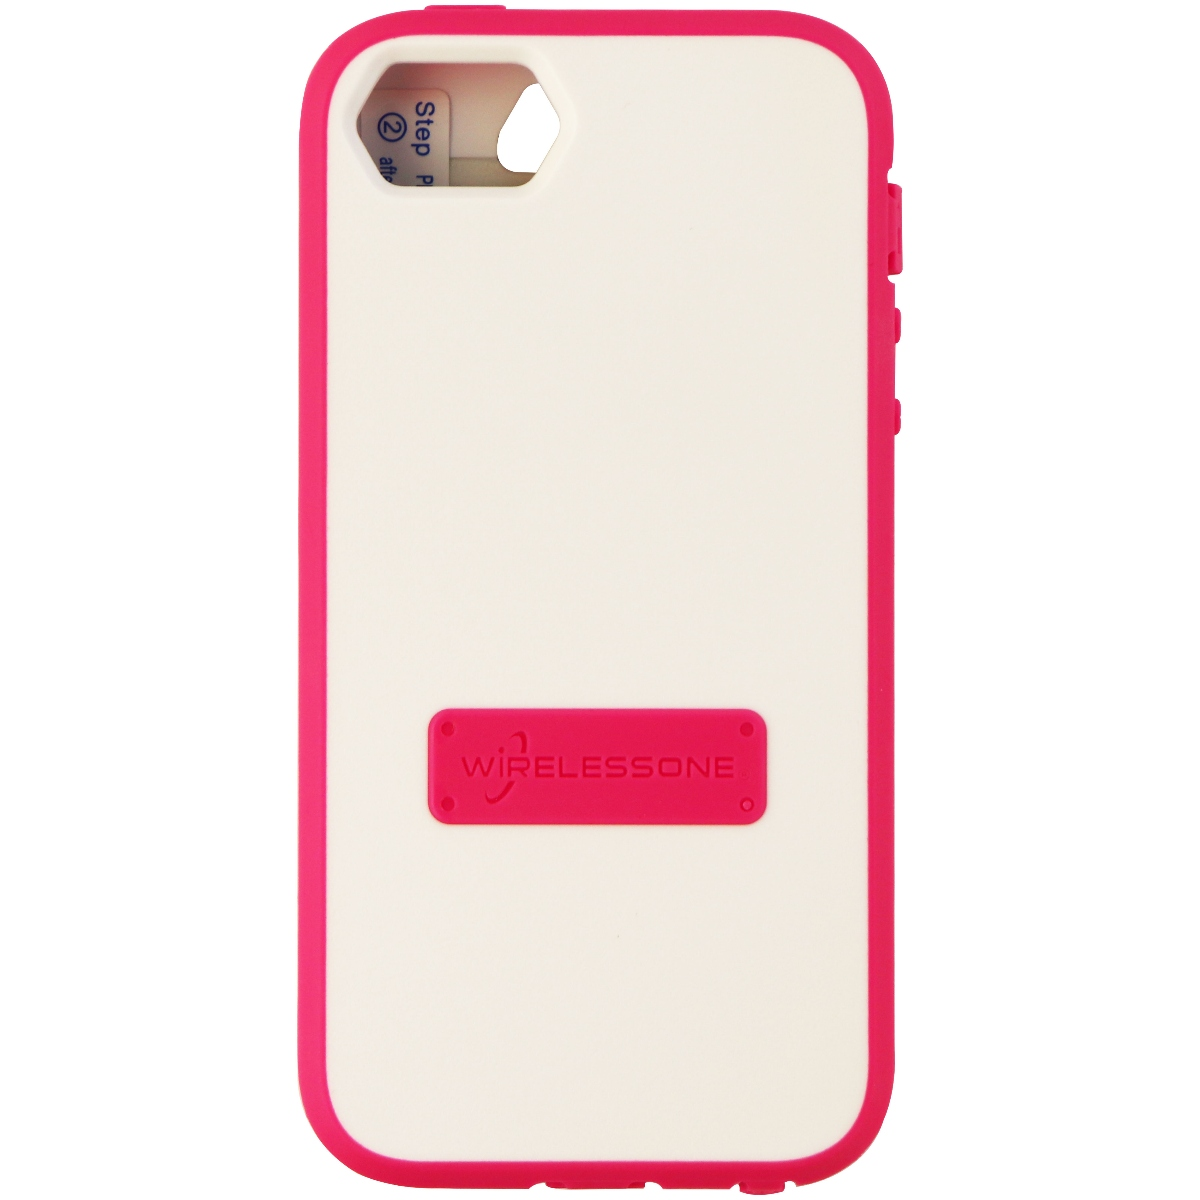 Wireless One Contour Series Protective Case Cover for iPhone 5c - White Pink